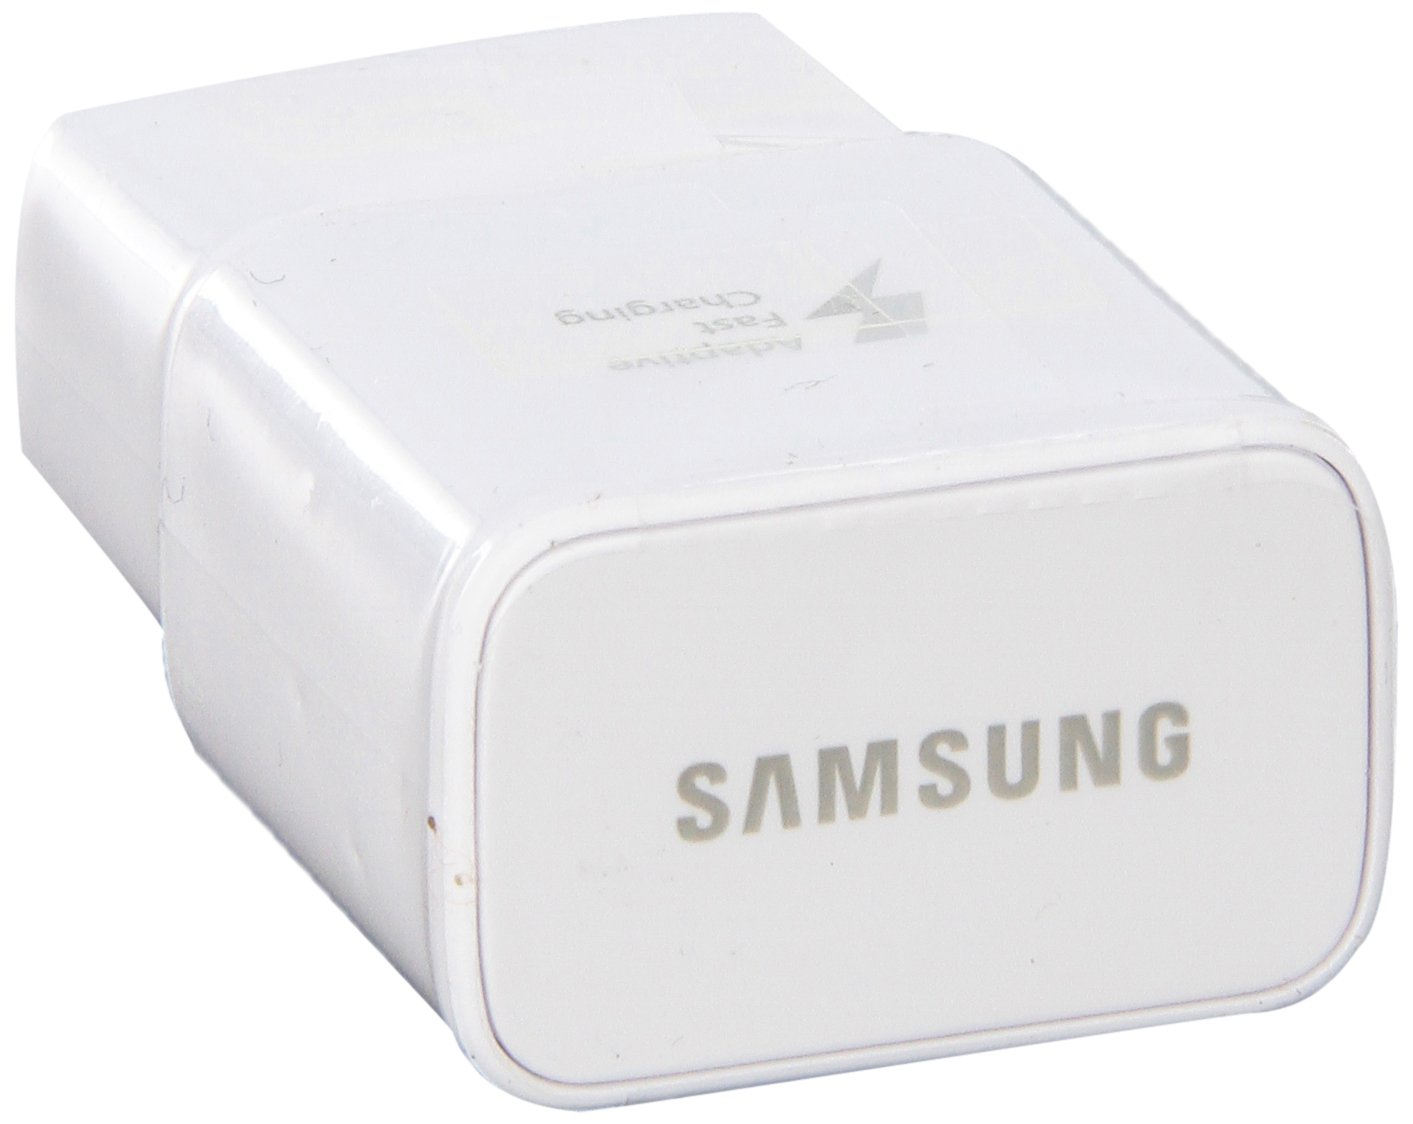 Samsung Adaptive Fast Charging Usb Wall Charger Ep Ta20 Jwe Power Adapter   White   Non Retail Packaging by Samsung